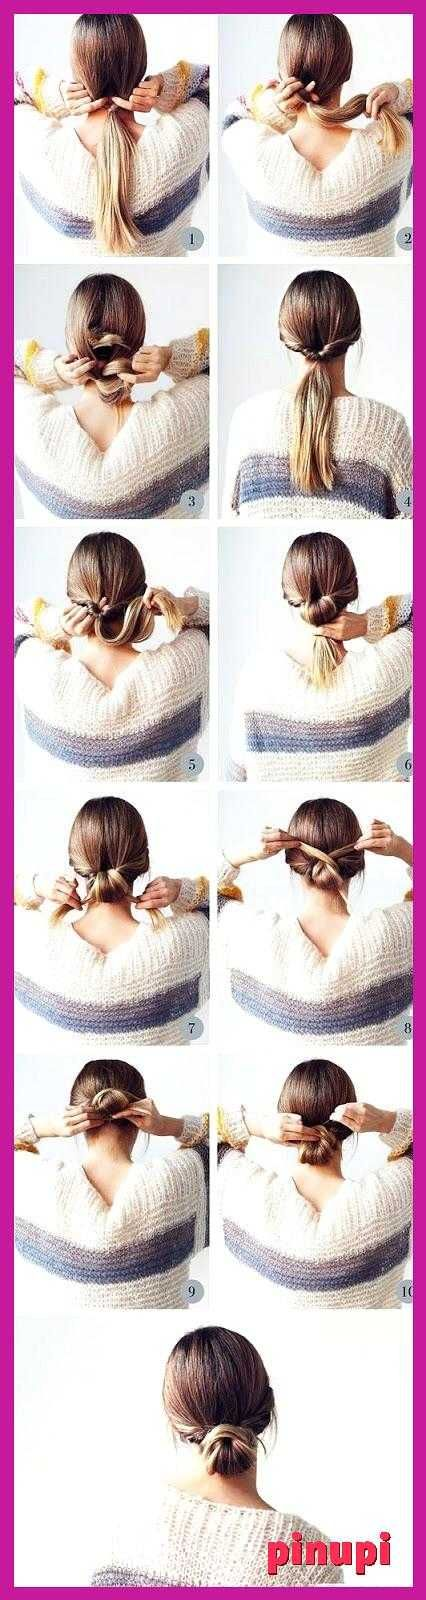 Check out our collection of easy hairstyles step by step diy You will get hairstyles step by step tutorials easy hairstyles quick lazy girl hair hacks...